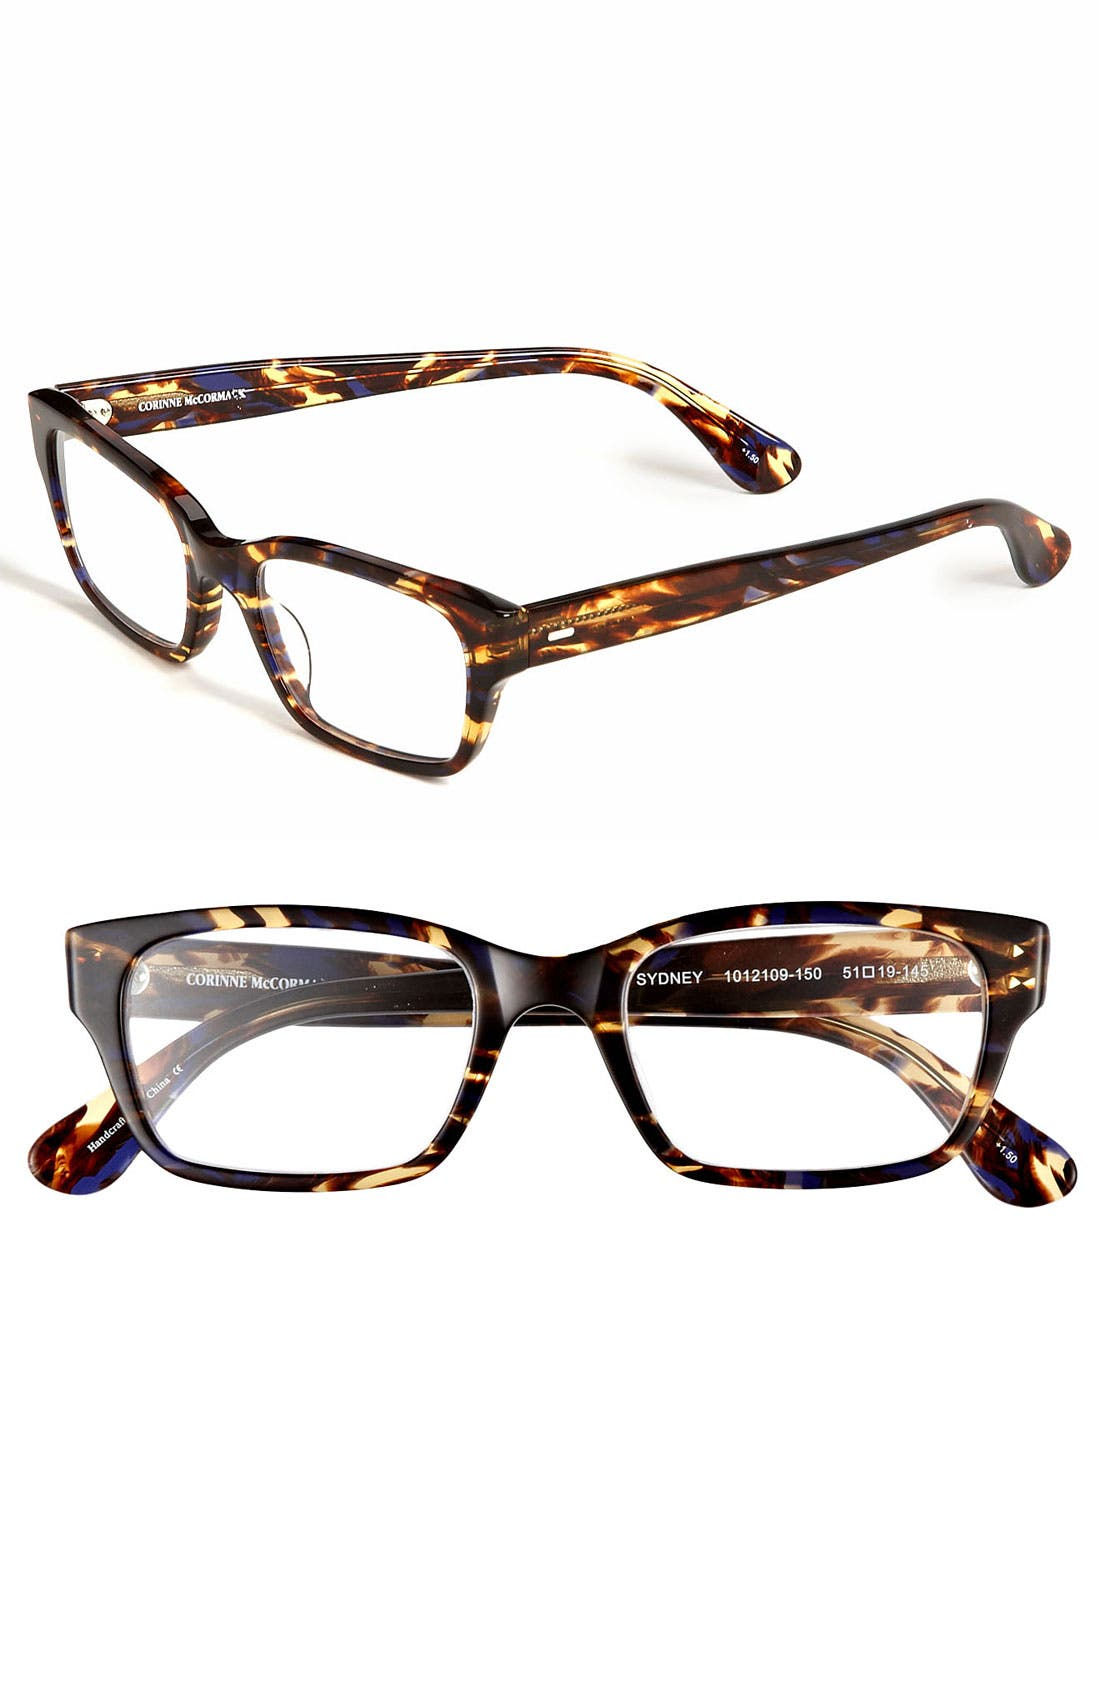 Corinne McCormack 'Sydney' 51mm Reading Glasses (2 for $88)